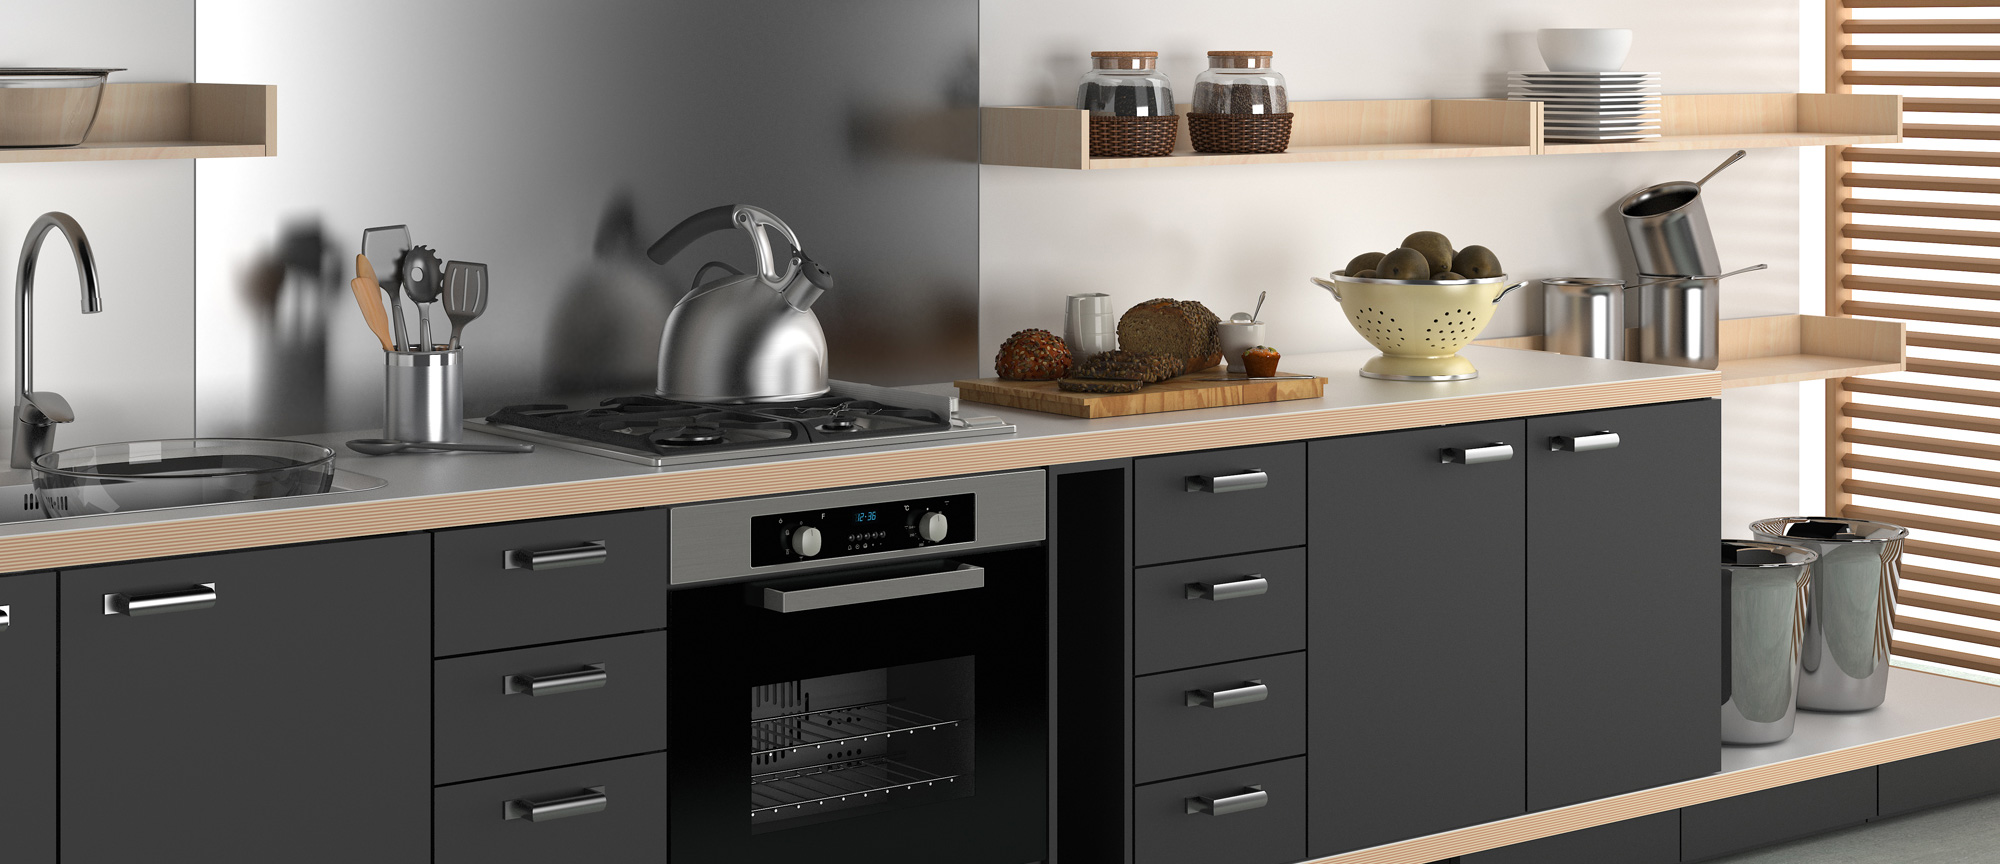 Fuga Ovens Cooktops And Range Hoods